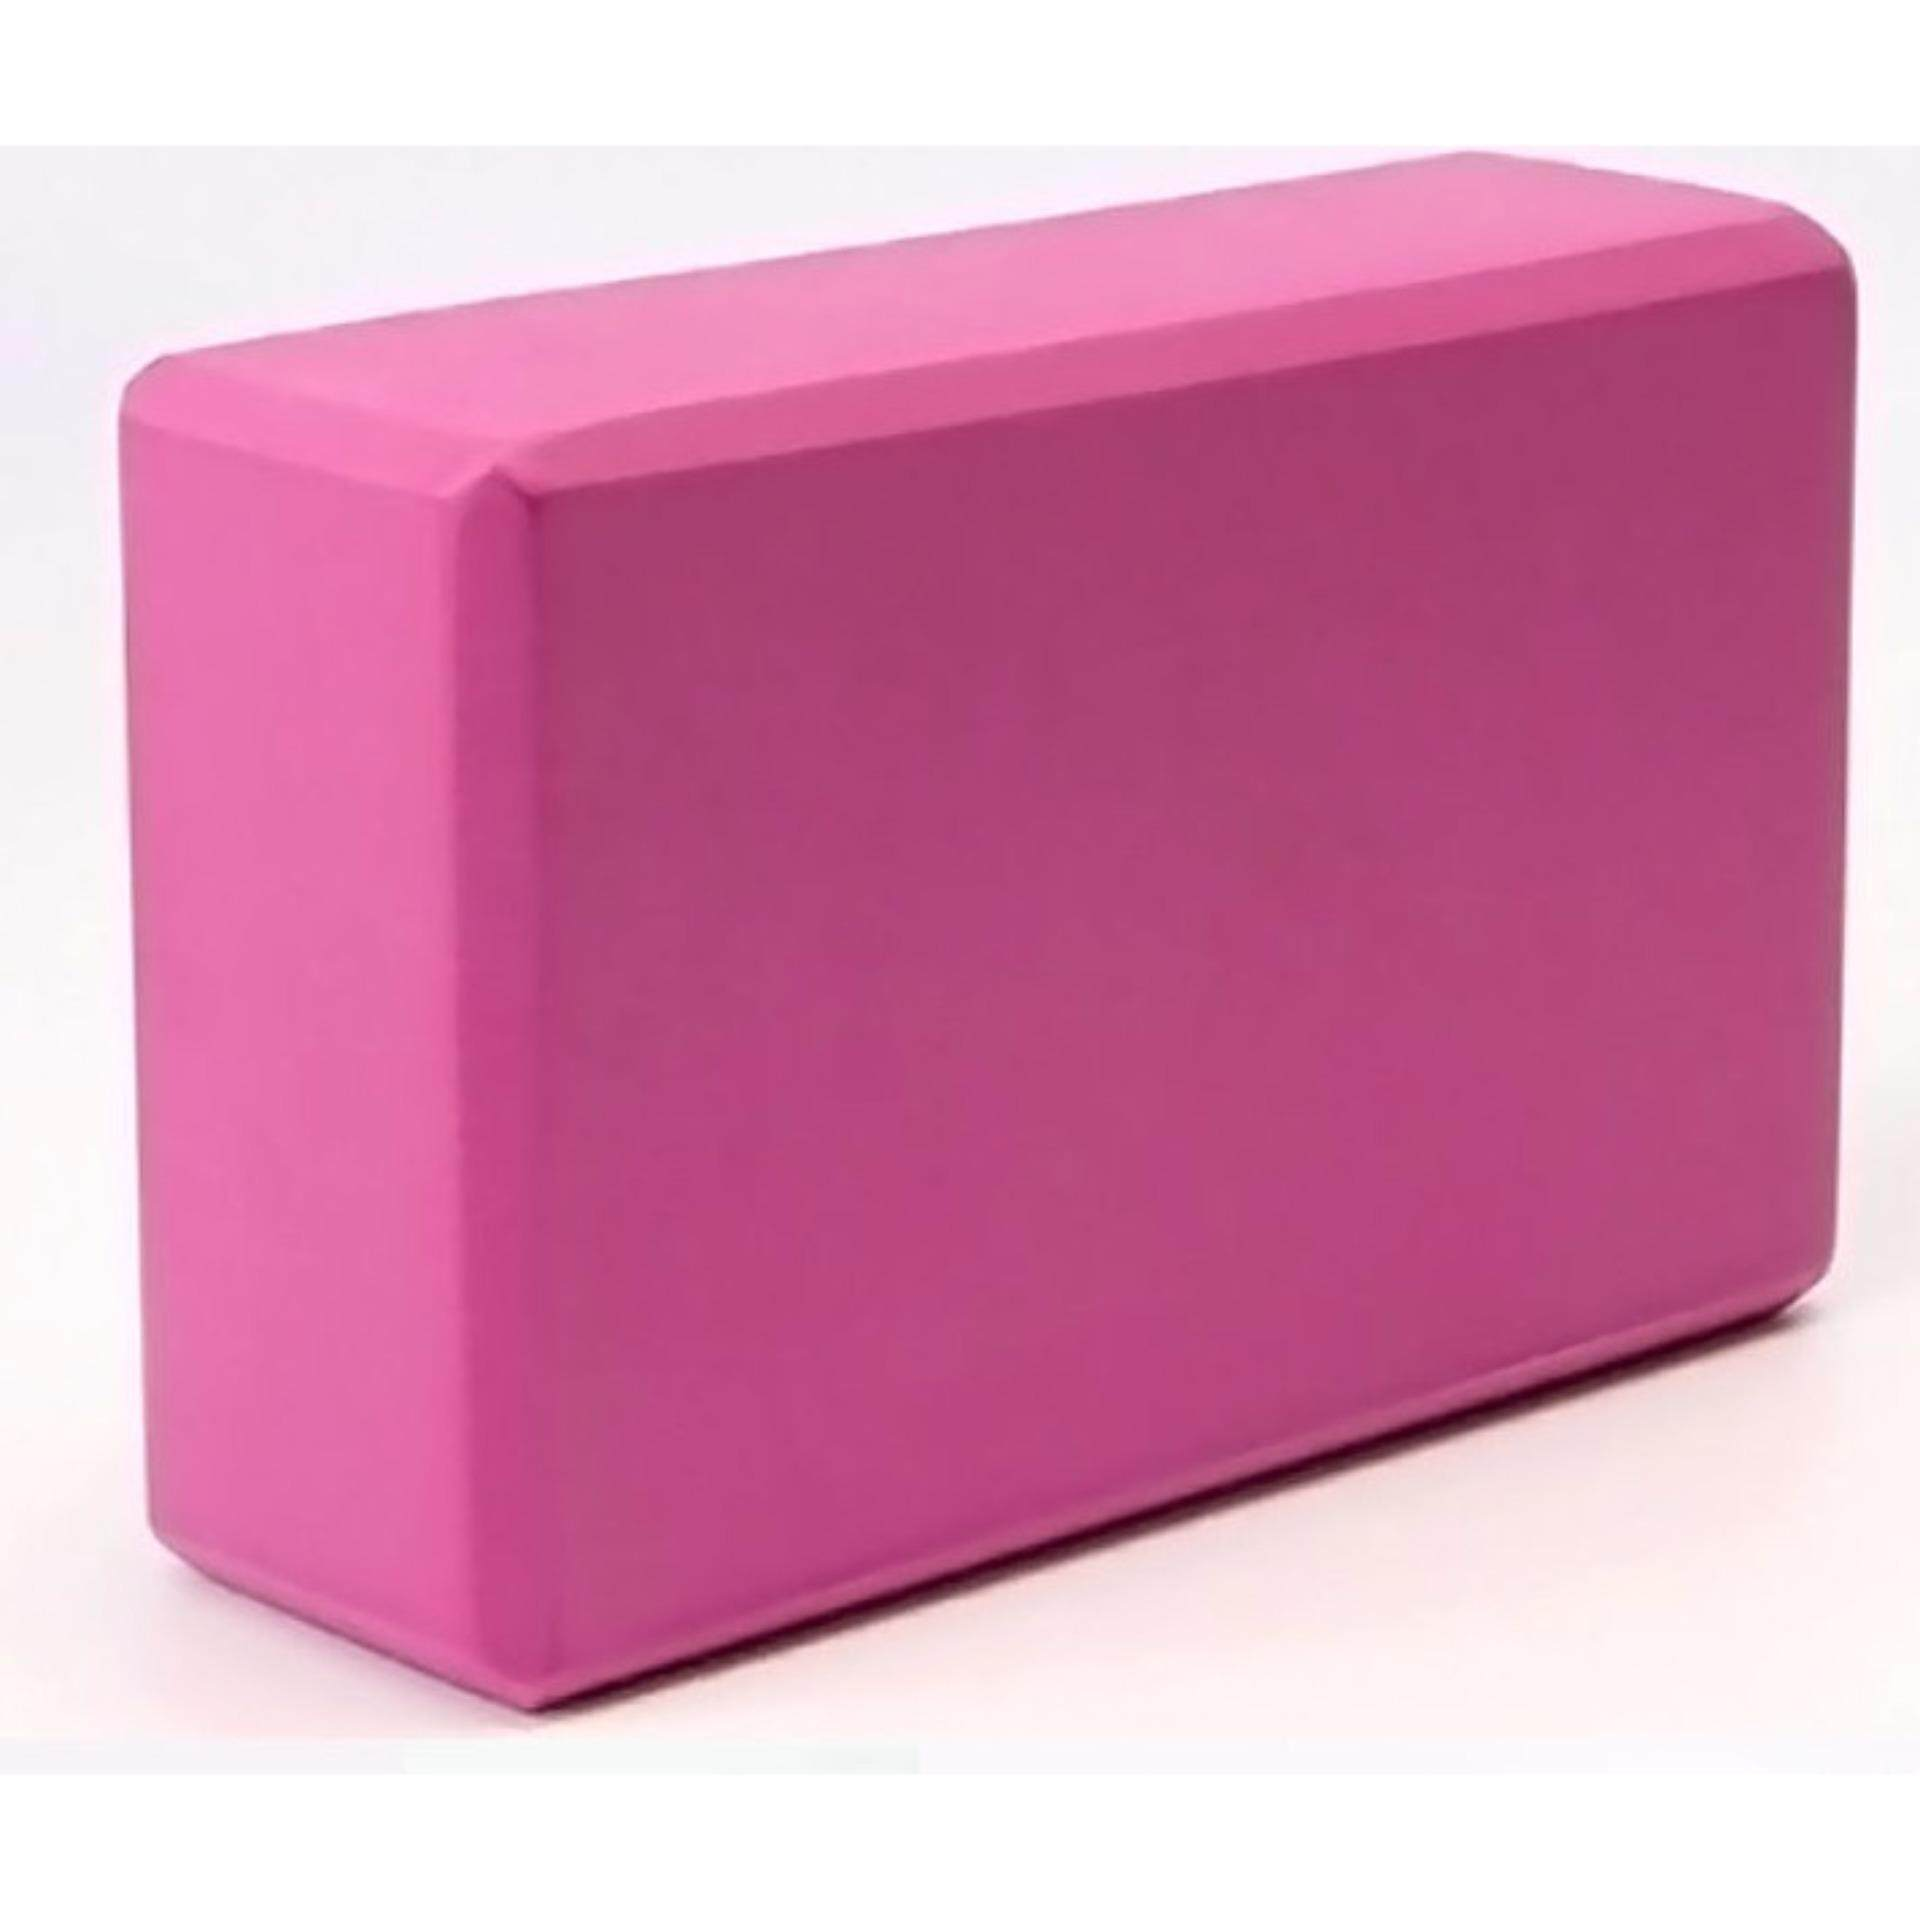 Livstill Yoga Block Brick Eva Foam Home - บล็อคโยคะ